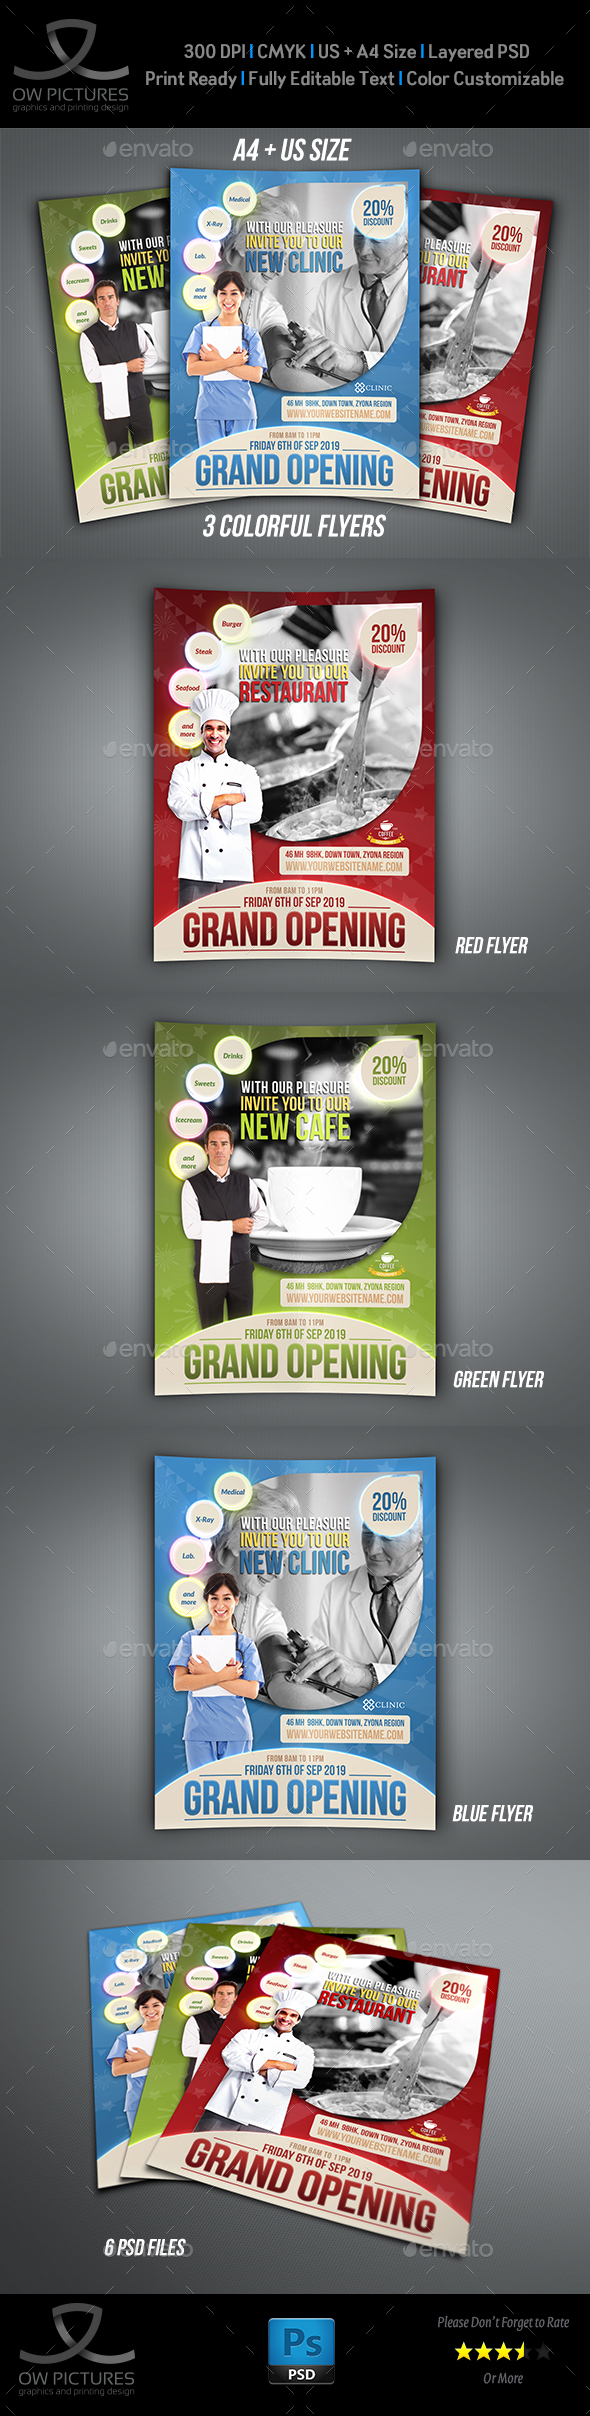 Grand Opening Flyer Template by OWPictures – Grand Opening Flyer Template